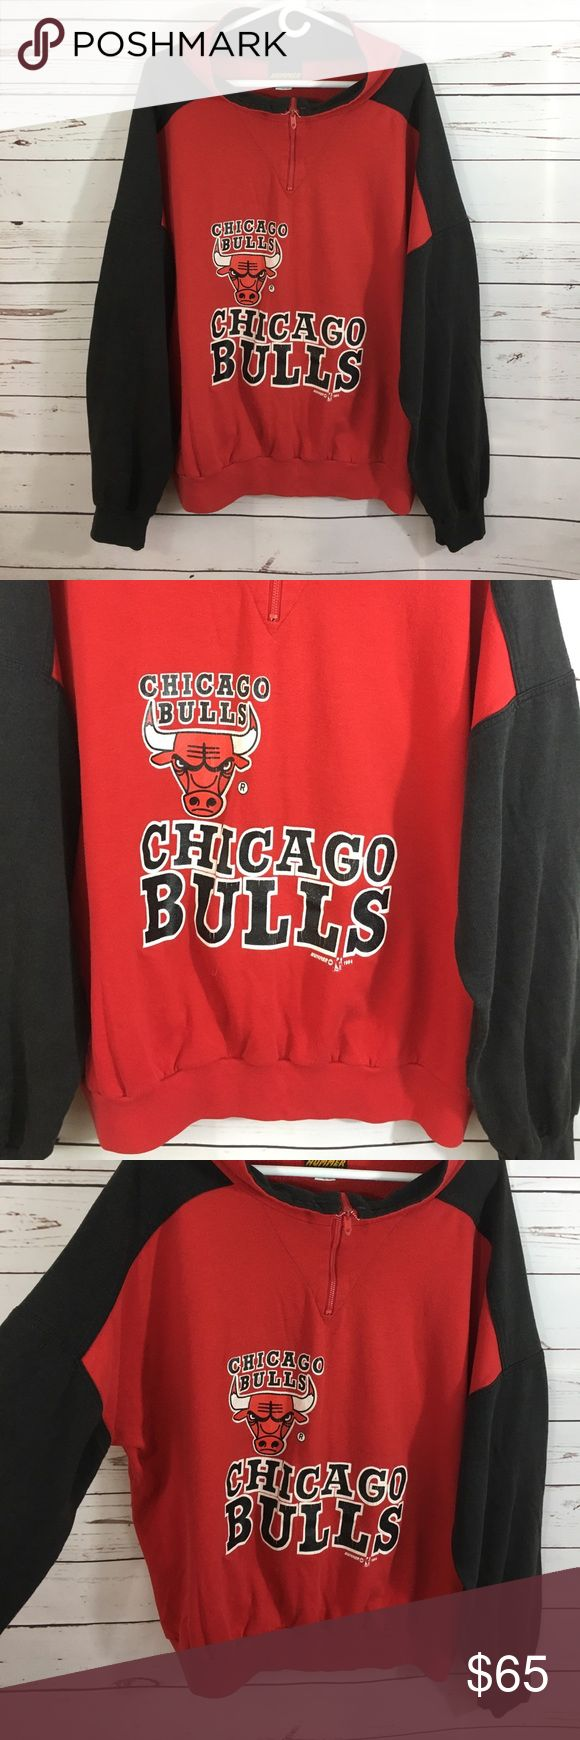 Vintage Chicago Bulls sweatshirt USA made Epic vintage bulls sweatshirt! Says xl, fits like Men's Large. Made in the USA! 1994. Chicago Bulls Shirts Sweatshirts & Hoodies